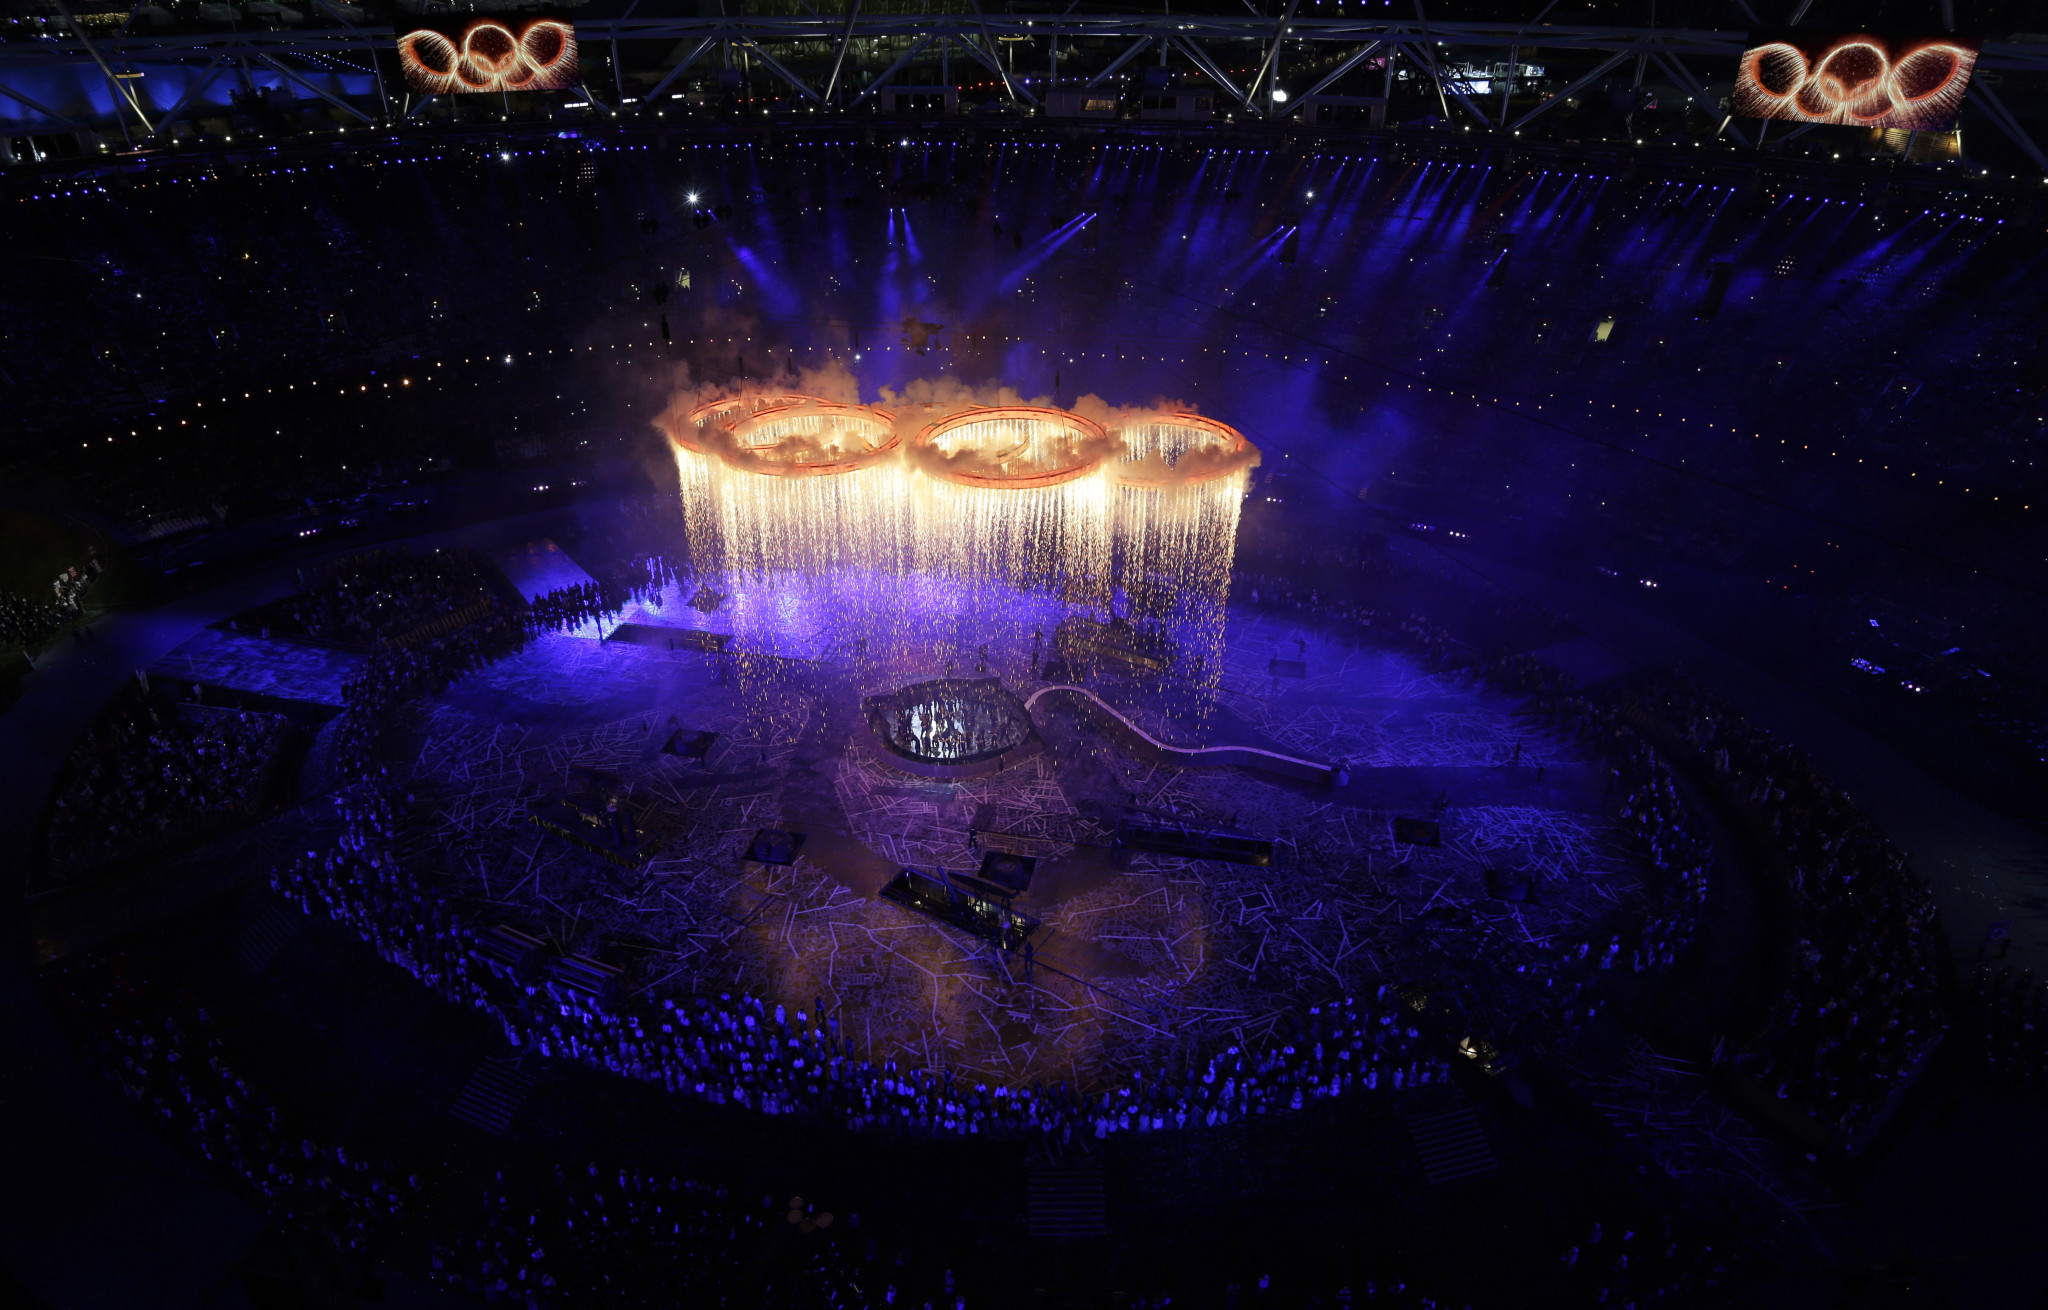 Xerox will provide 170 printers and scanners at Glasgow 2018, having previously done so at the London 2012 Olympics ©Getty Images